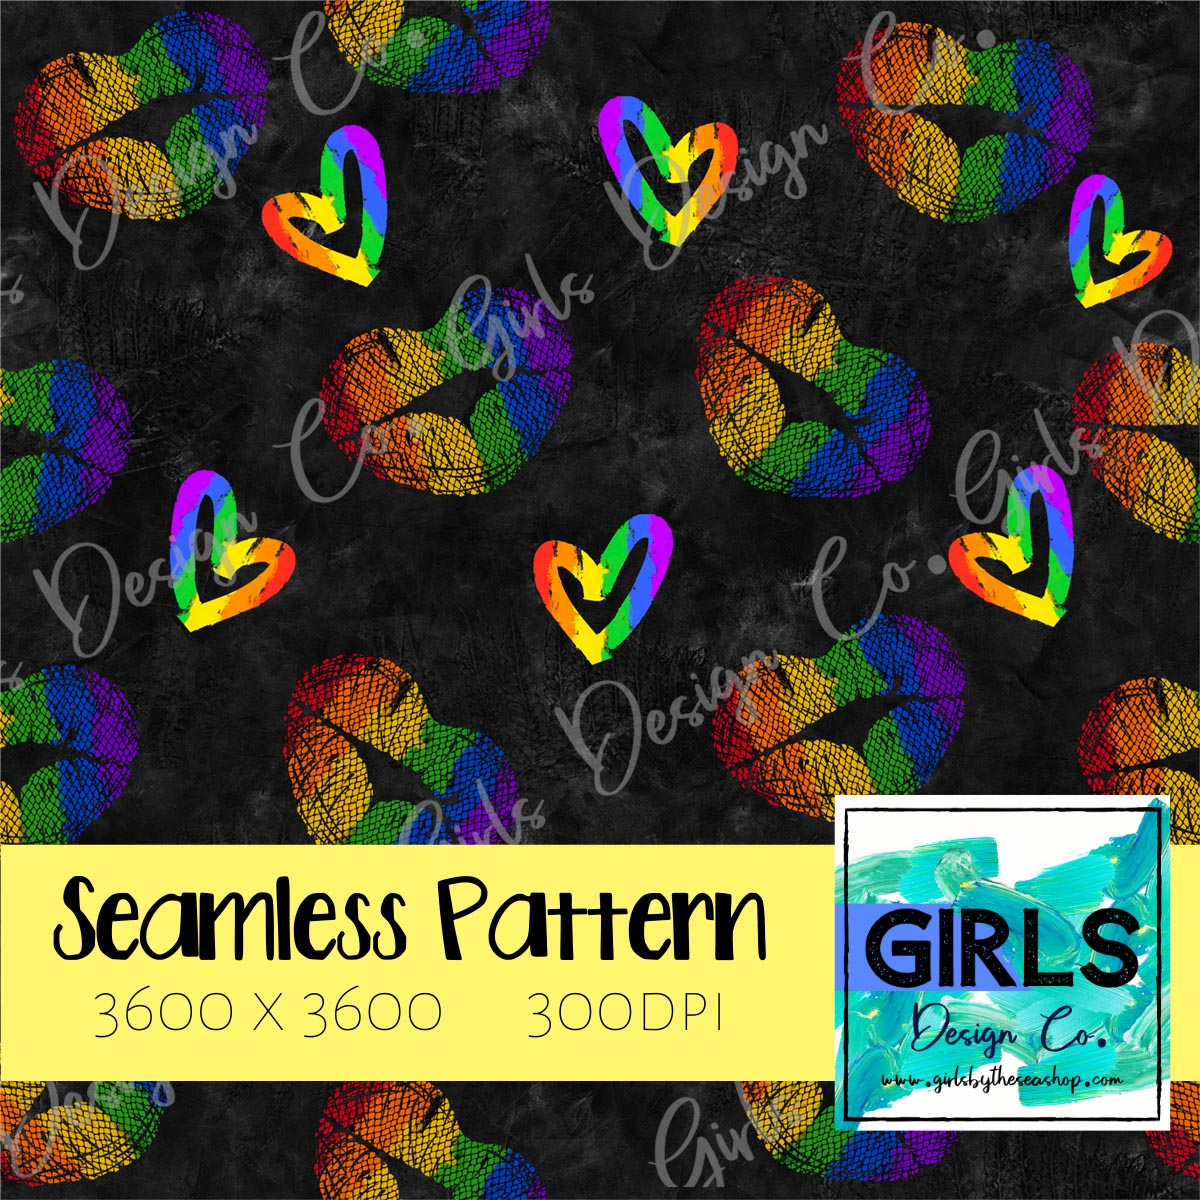 Pride Lips and Hearts Black Background SEAMLESS FILE-Digital, Digital Design, Digital File, Digital Paper, Fabric, Gay Pride, Hearts, Lips, Pride, Rainbow, Seamless, Seamlessdesign, Stripes, Sublimation, Summer-Shop-Wholesale-Womens-Boutique-Custom-Graphic-Tees-Branding-Gifts